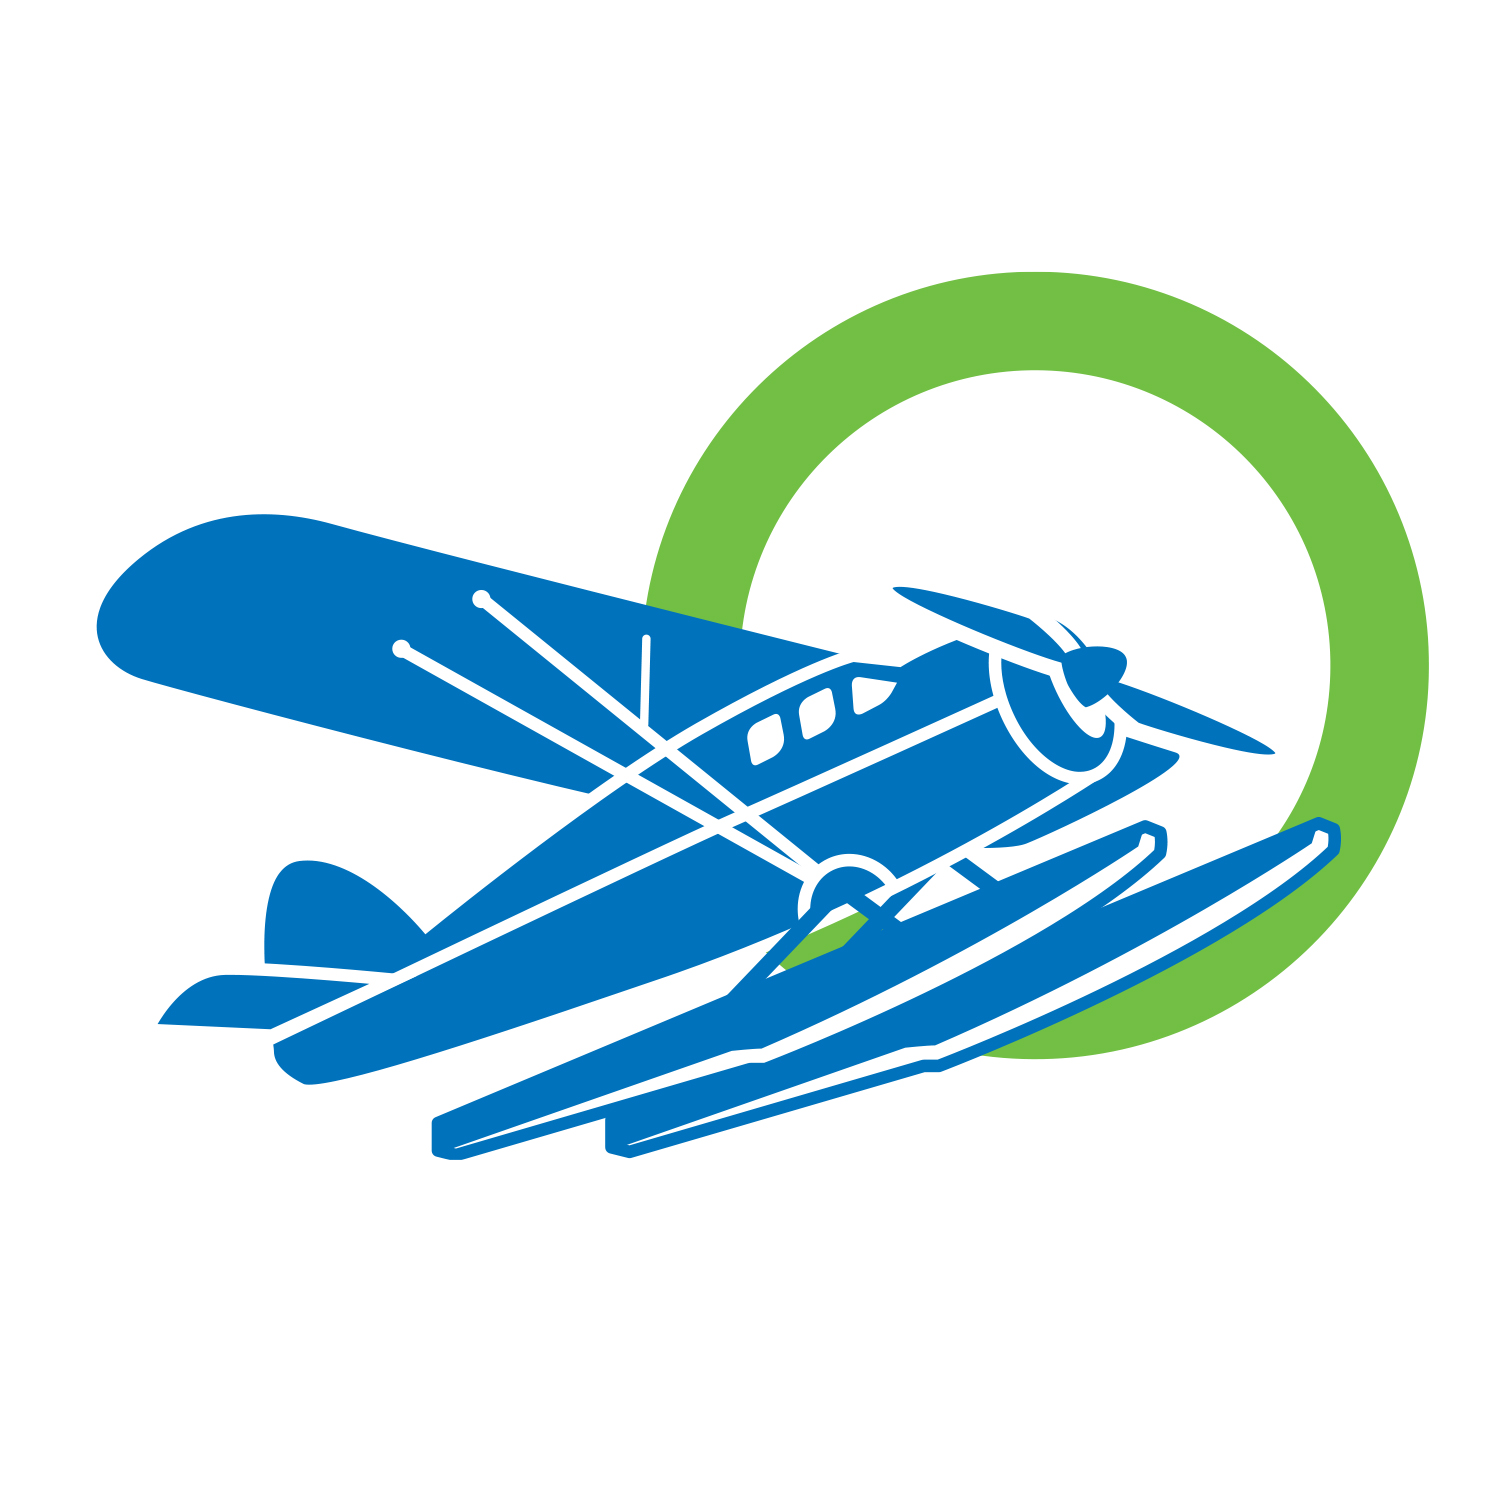 A graphic of a blue aircraft flying into a green Servus Circle